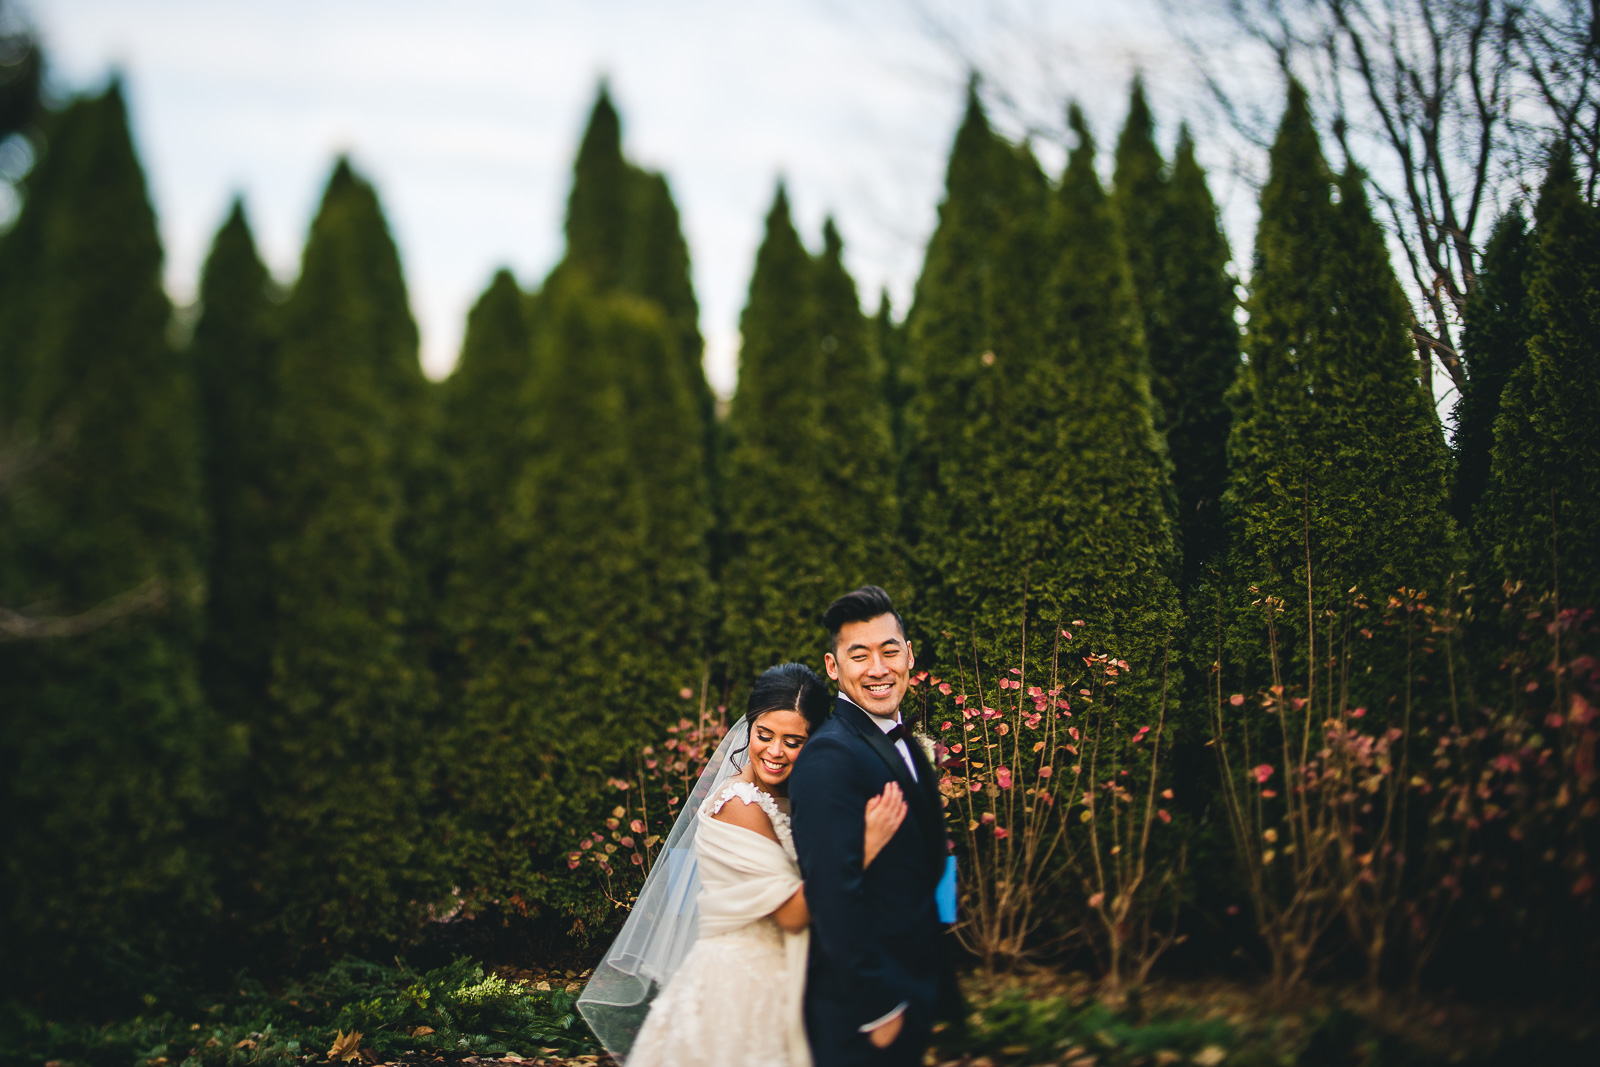 134 chicago wedding photographer best portraits during weddings review - 2018 in Review // My Favorite Chicago Wedding Photography Portraits